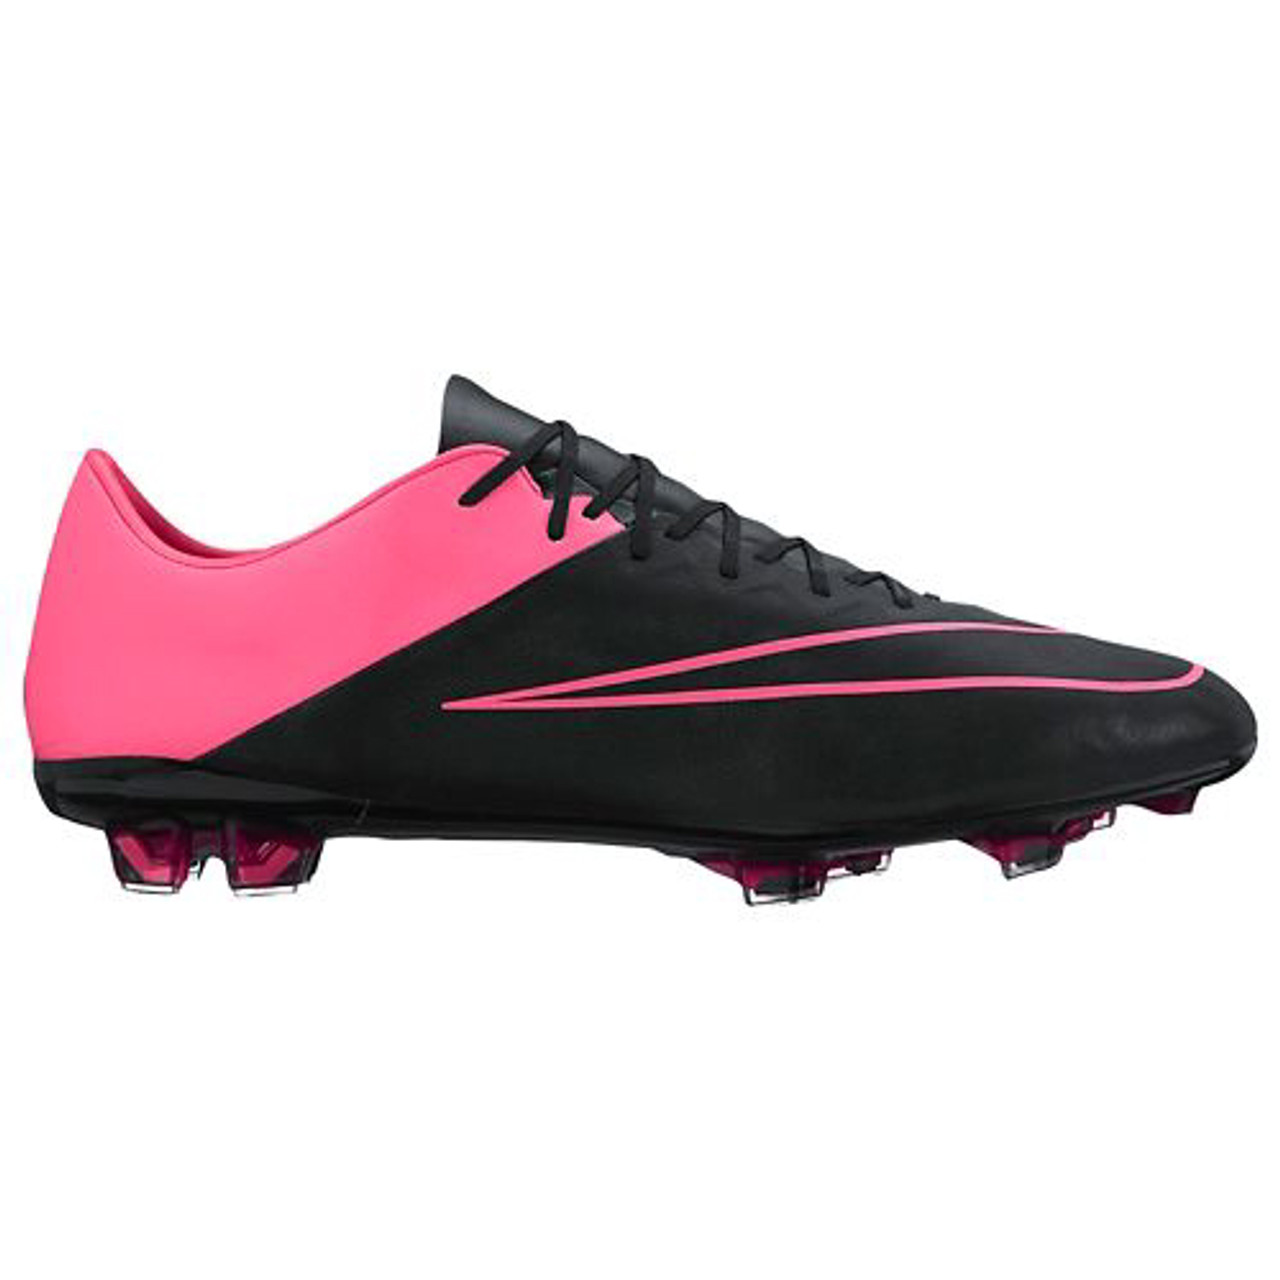 save off 62aed 6f8bc NIKE MERCURIAL VAPOR X LEATHER FG BLACK PINK firm ground shoes - Soccer Plus